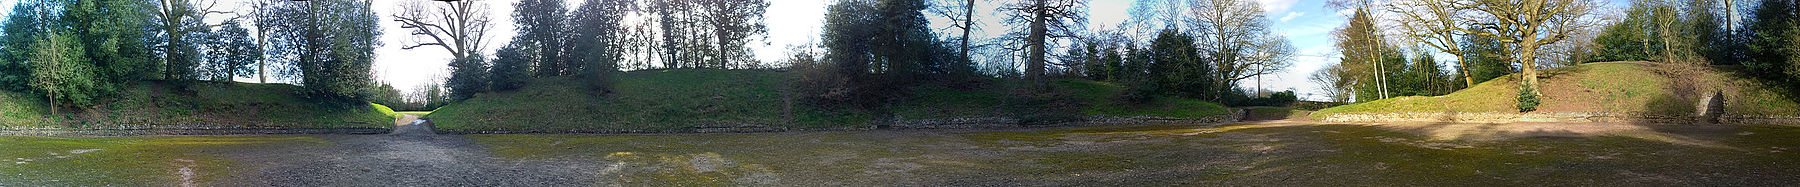 Silchester Amphitheatre Panorama 360 degrees